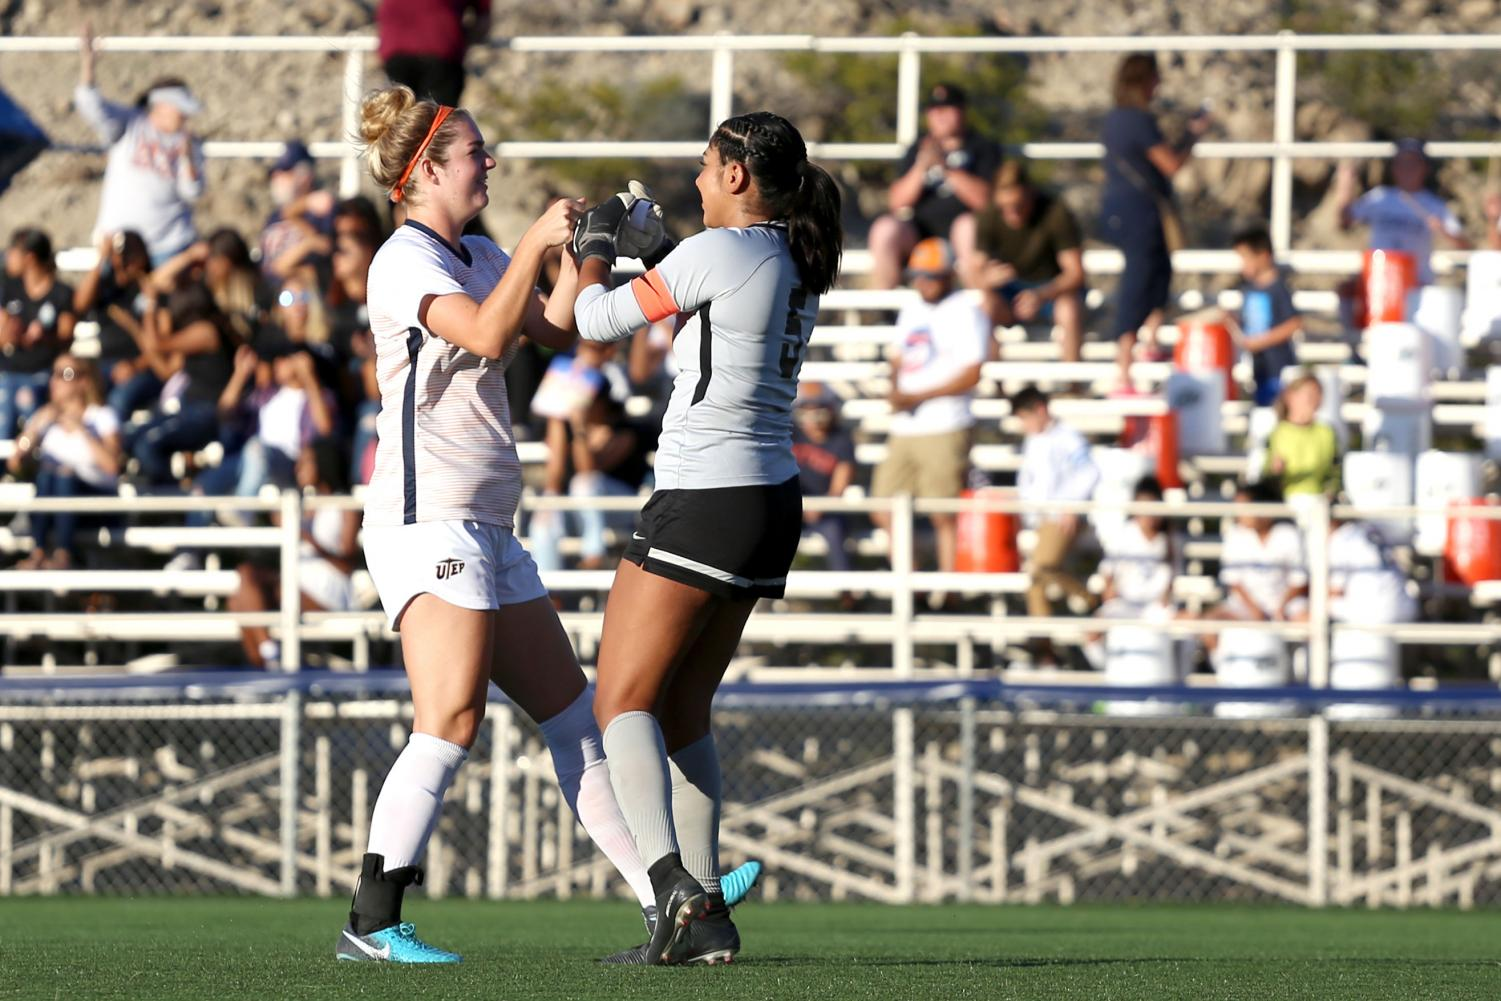 Senior goalkeeper Alyssa Palacios and senior defender Payton Ross celebrate as the miners score a second goal against NMSU.